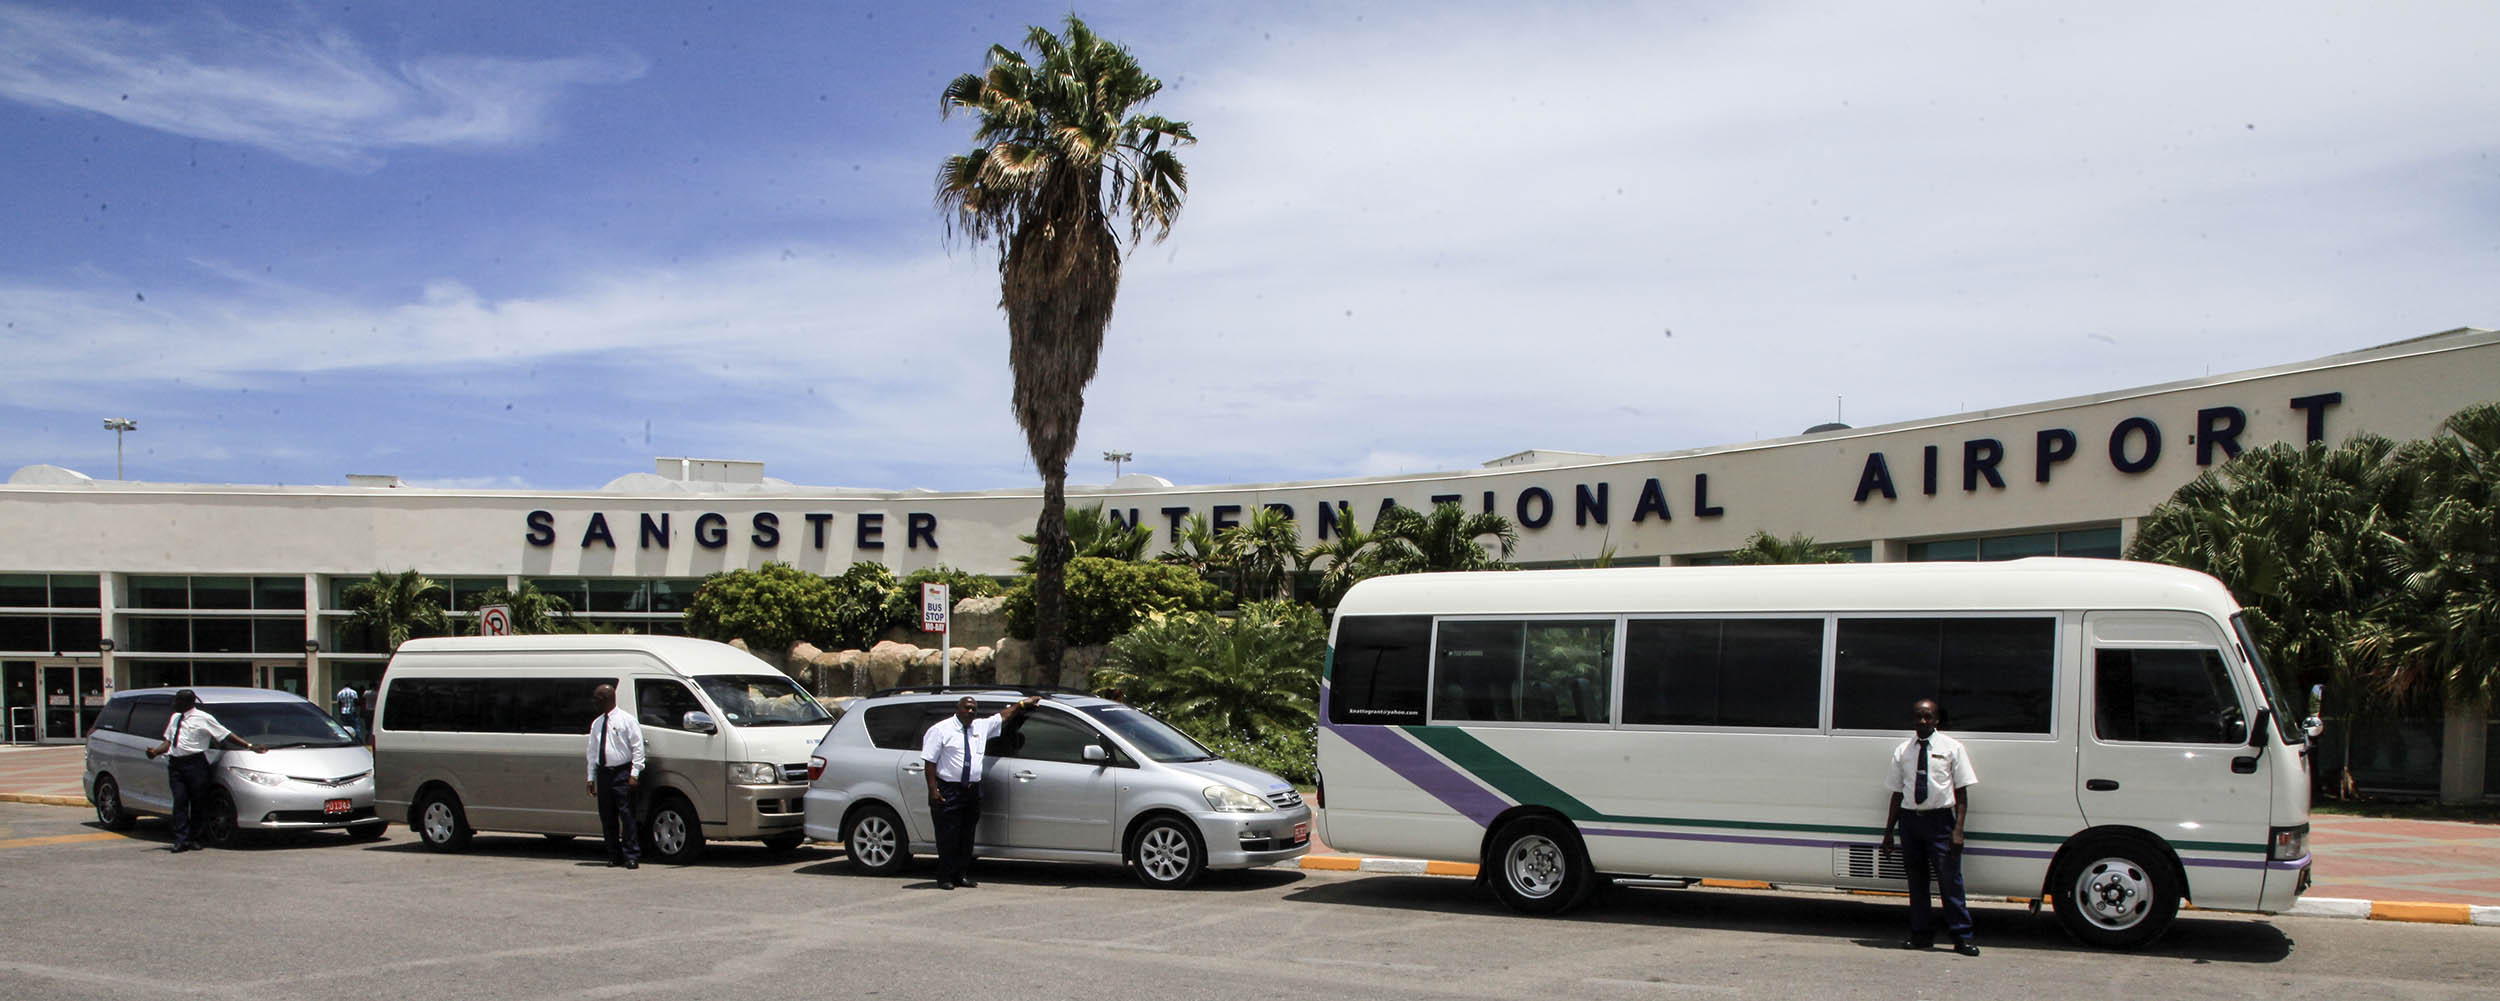 JUTA Taxi and Tours Jamaica @ Sangster International Airport - Montego Bay Jamaica